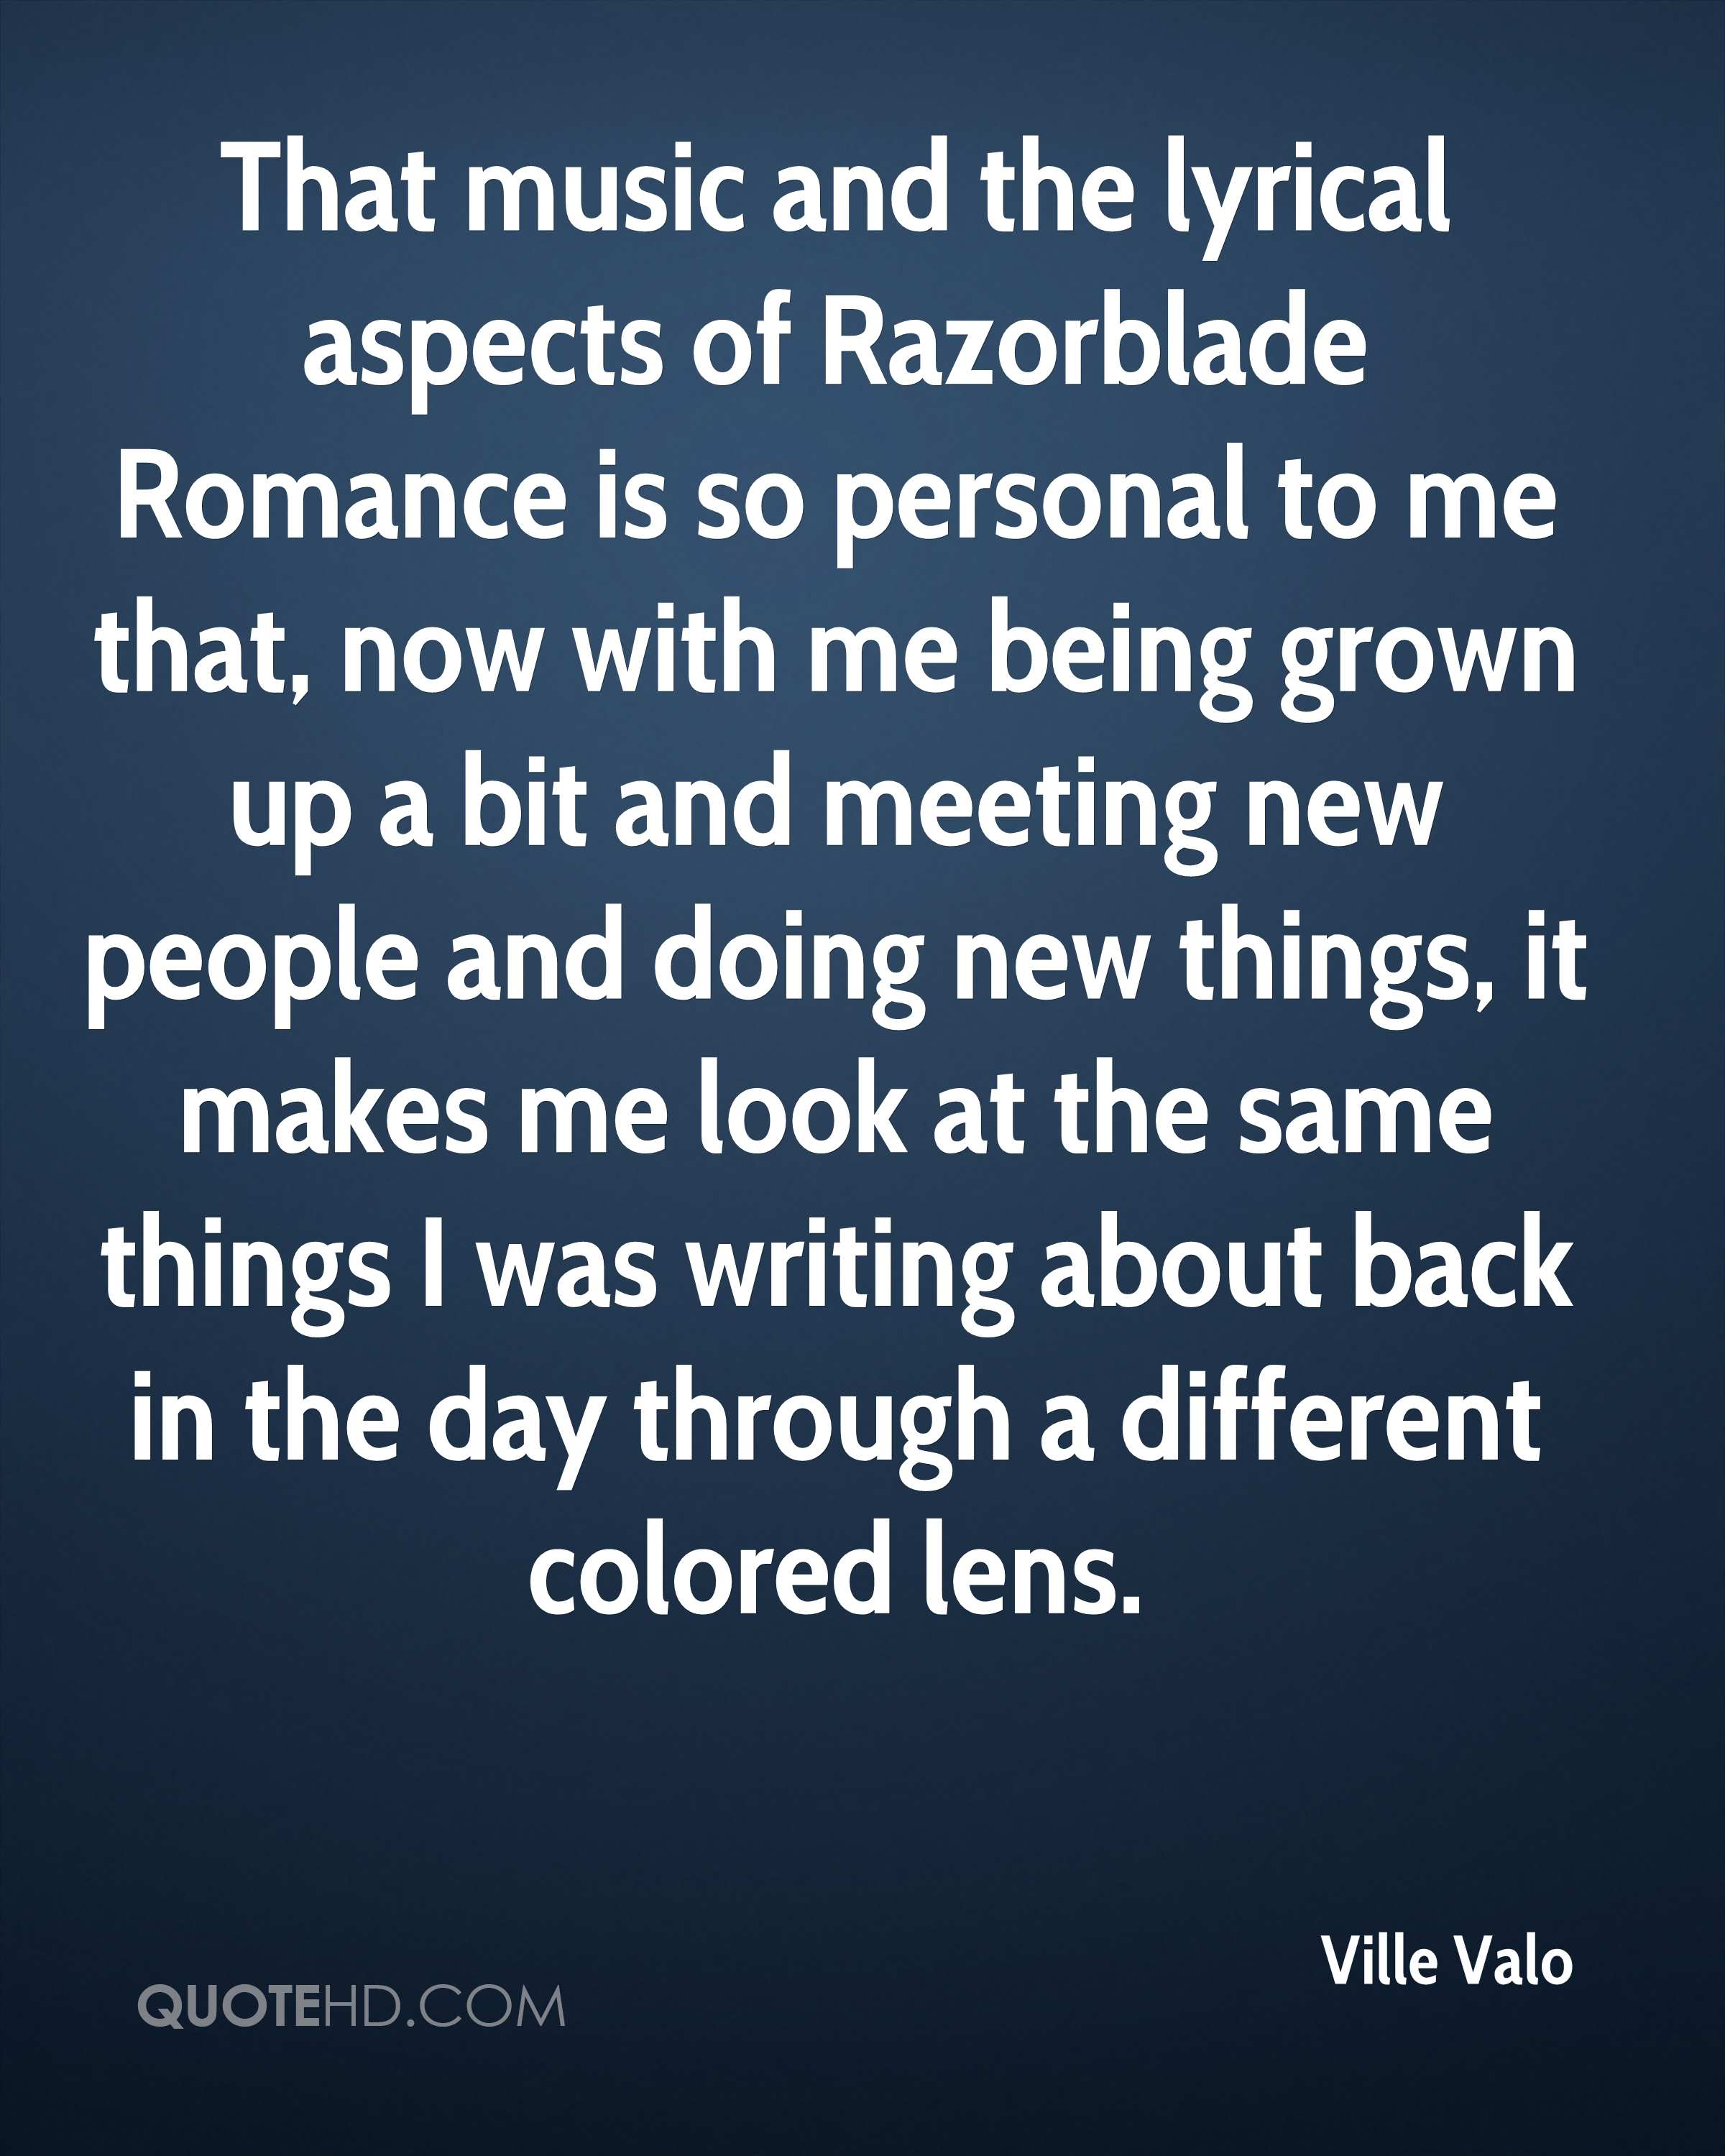 That music and the lyrical aspects of Razorblade Romance is so personal to me that, now with me being grown up a bit and meeting new people and doing new things, it makes me look at the same things I was writing about back in the day through a different colored lens.